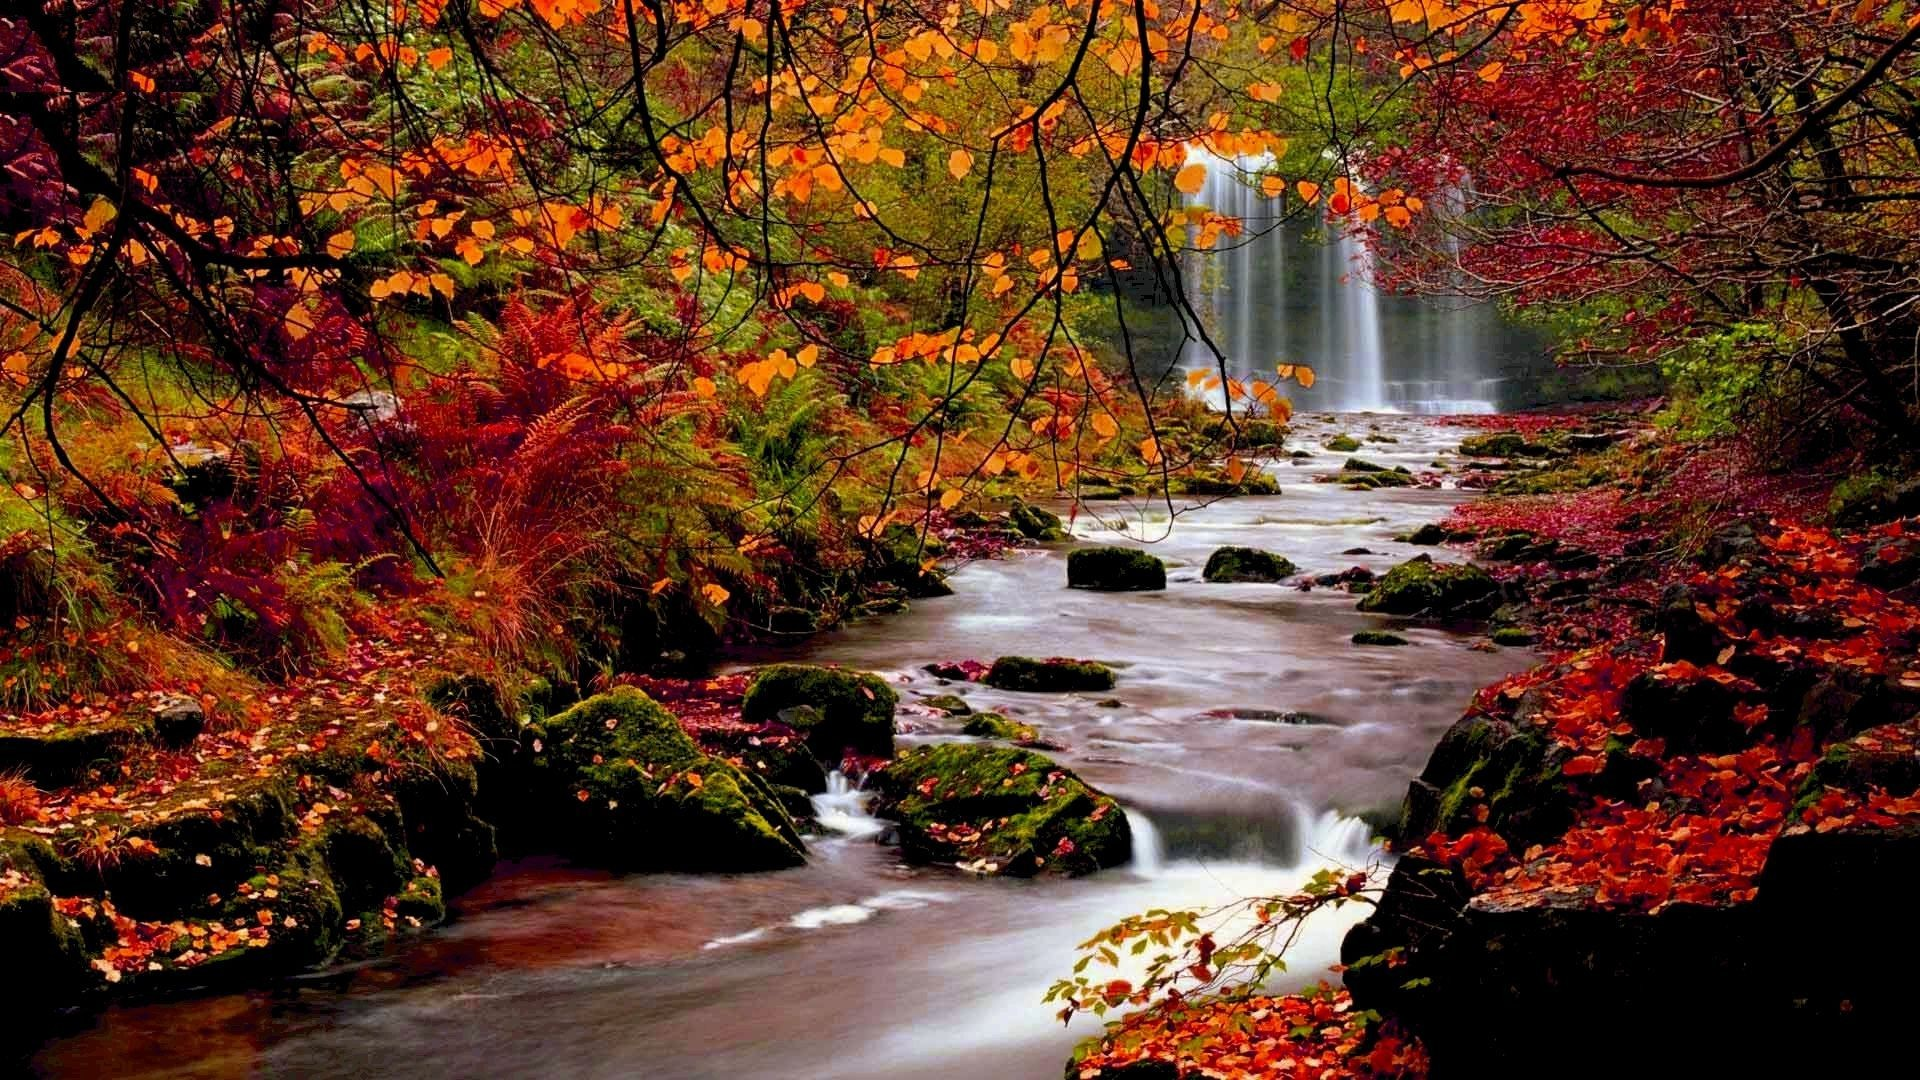 Free Widescreen Wallpaper Fall Autumn Tree Wallpaper 61 Images